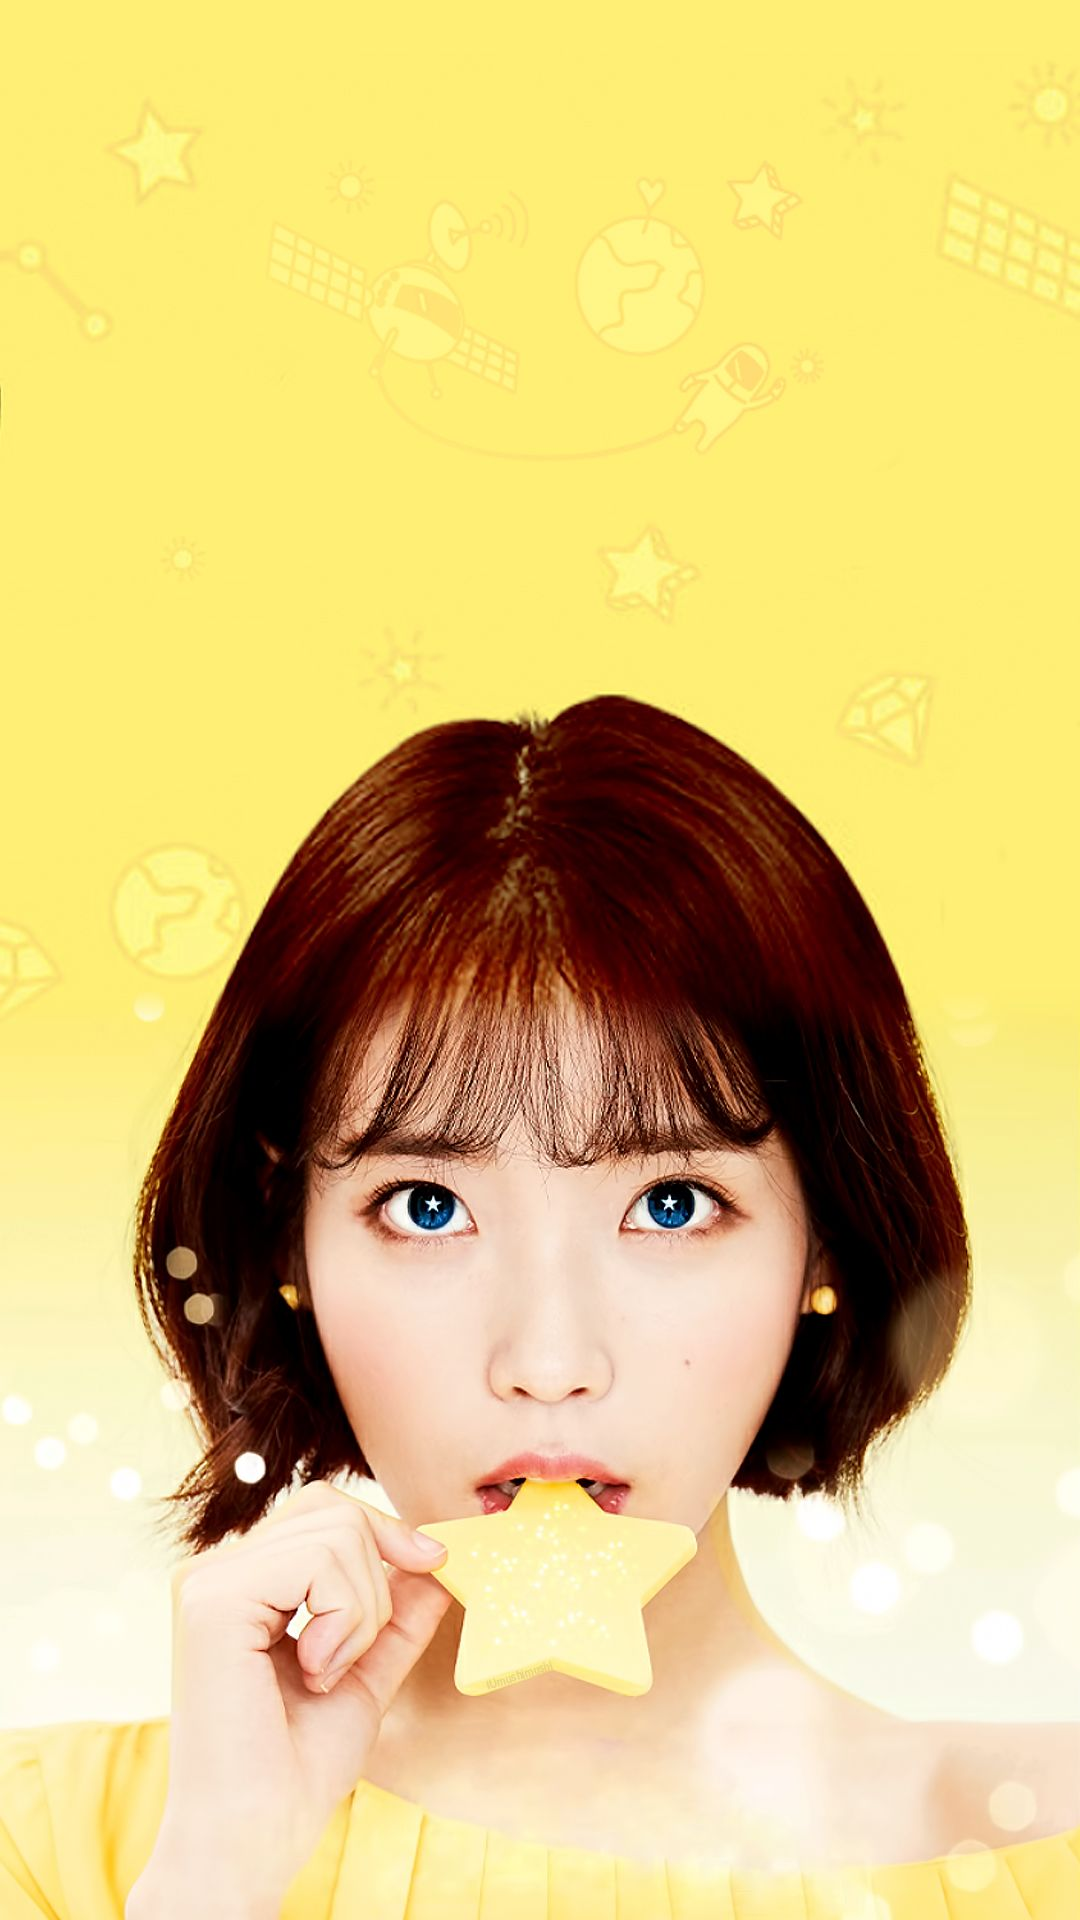 Iu Mobile Wallpaper 1080x1920 1 2 Yellow Aesthetic Kpop Wallpaper Aesthetic Iphone Wallpaper